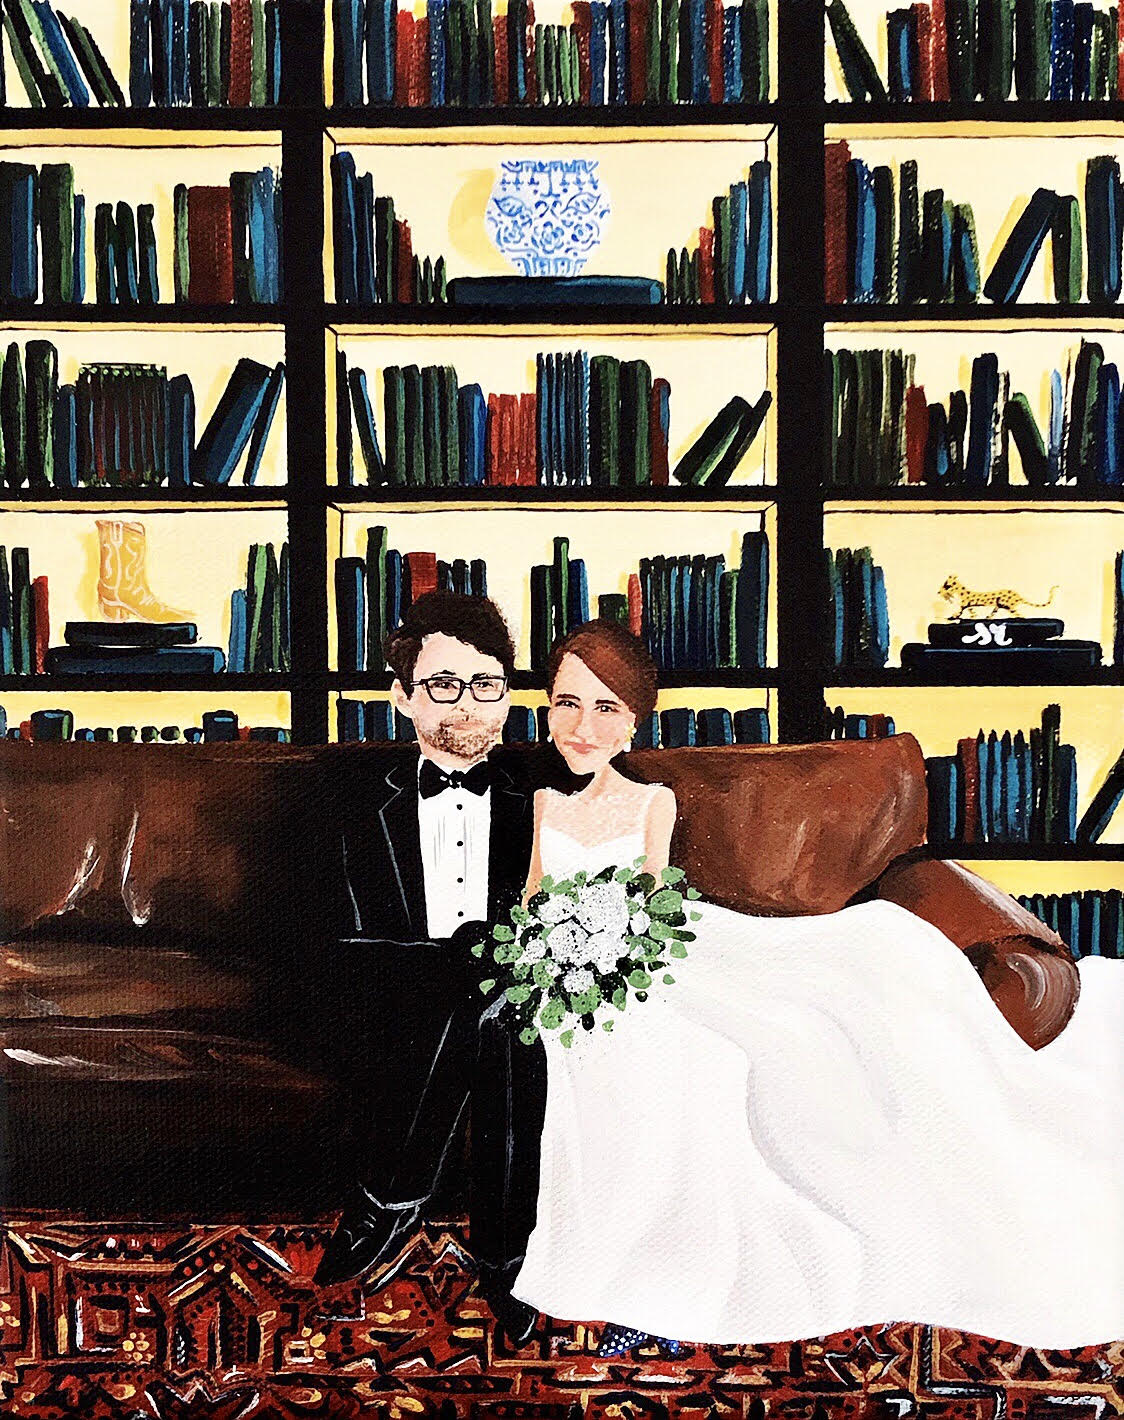 wedding portrait - first anniversary gift - paper anniversary gift idea - sarah russell painter